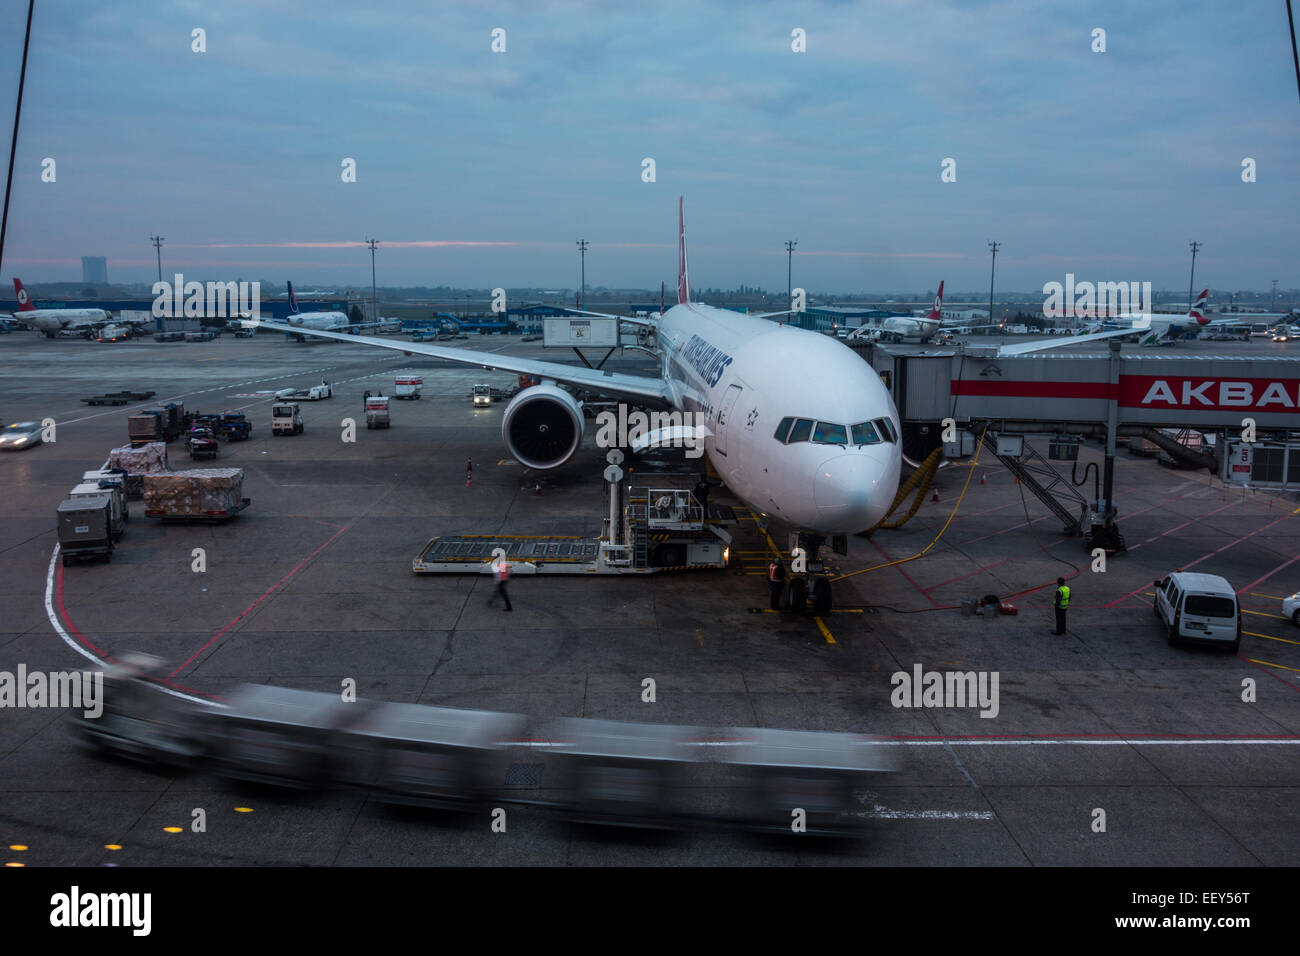 Cargo Airline Stock Photos & Cargo Airline Stock Images - Alamy